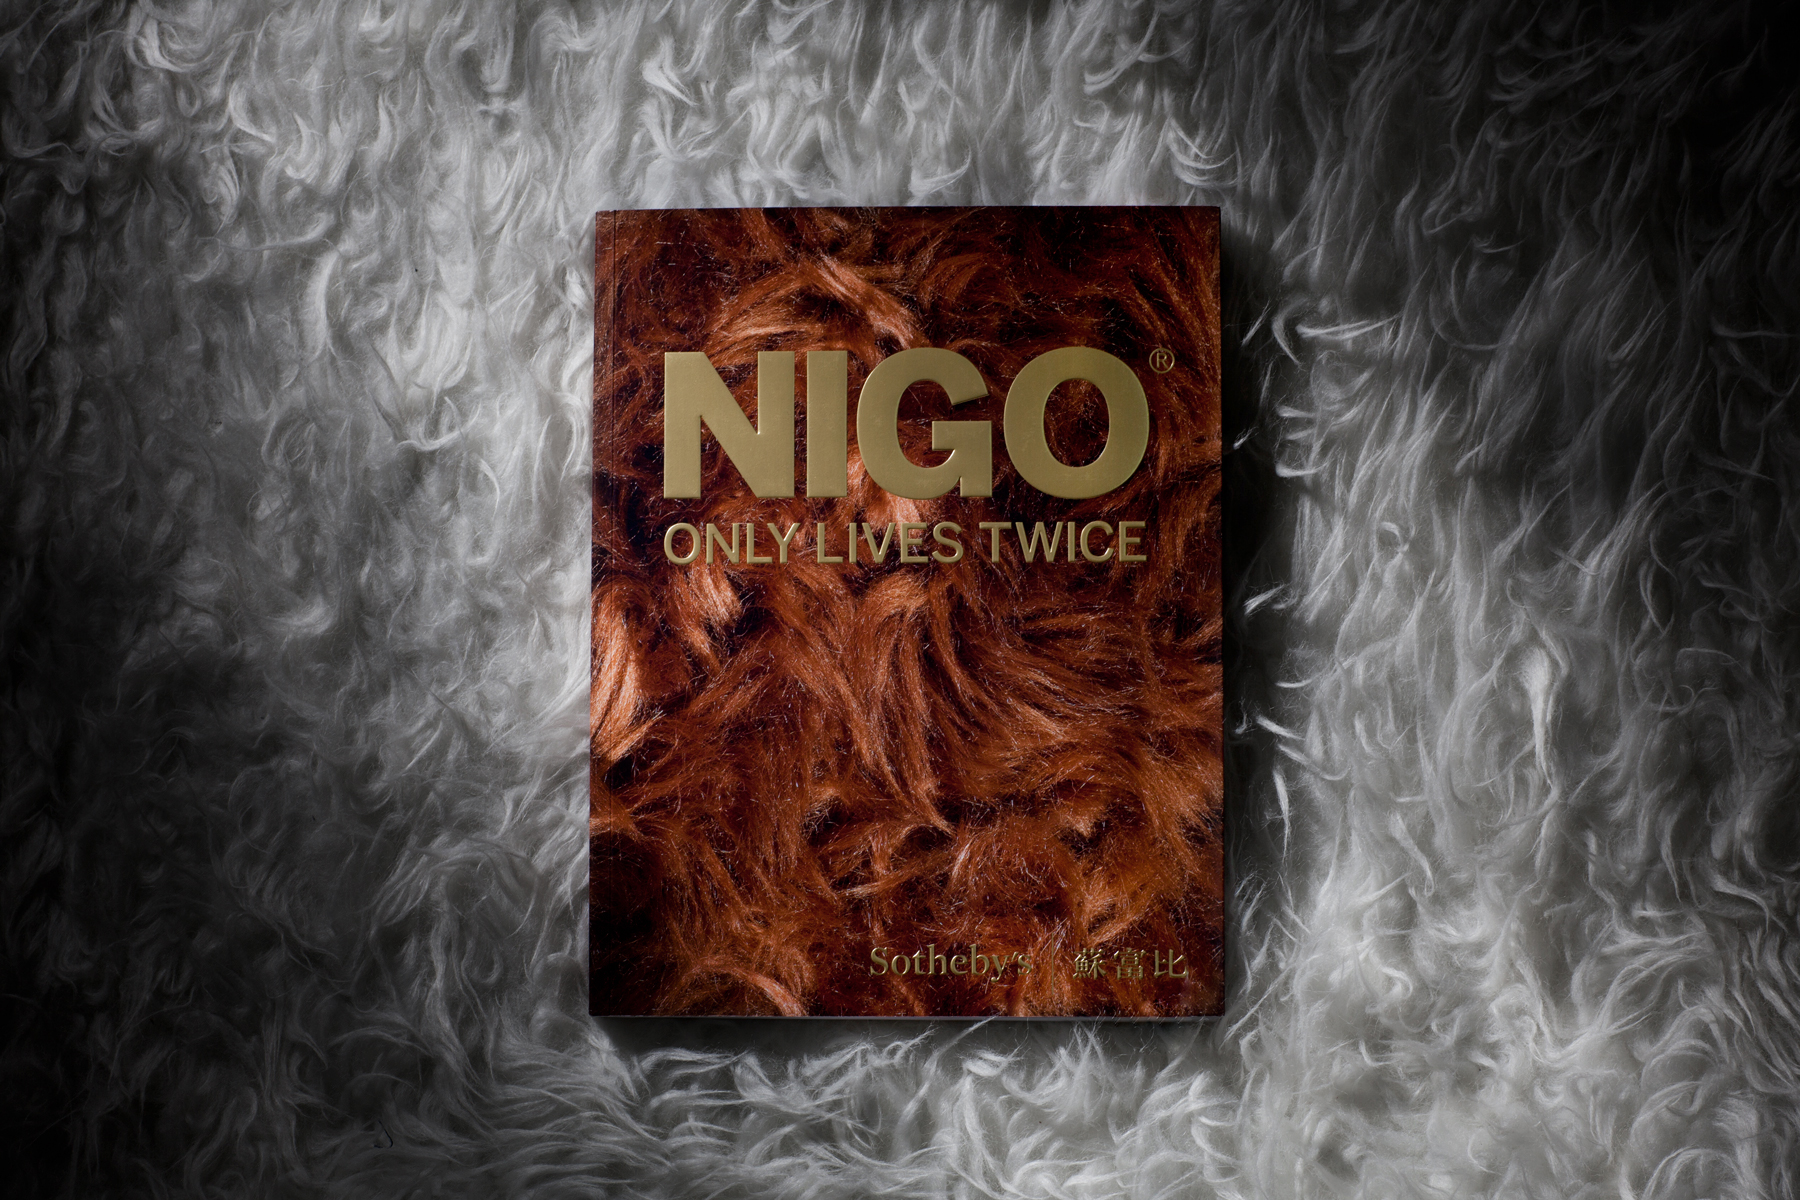 sothebys nigo only lives twice catalogue